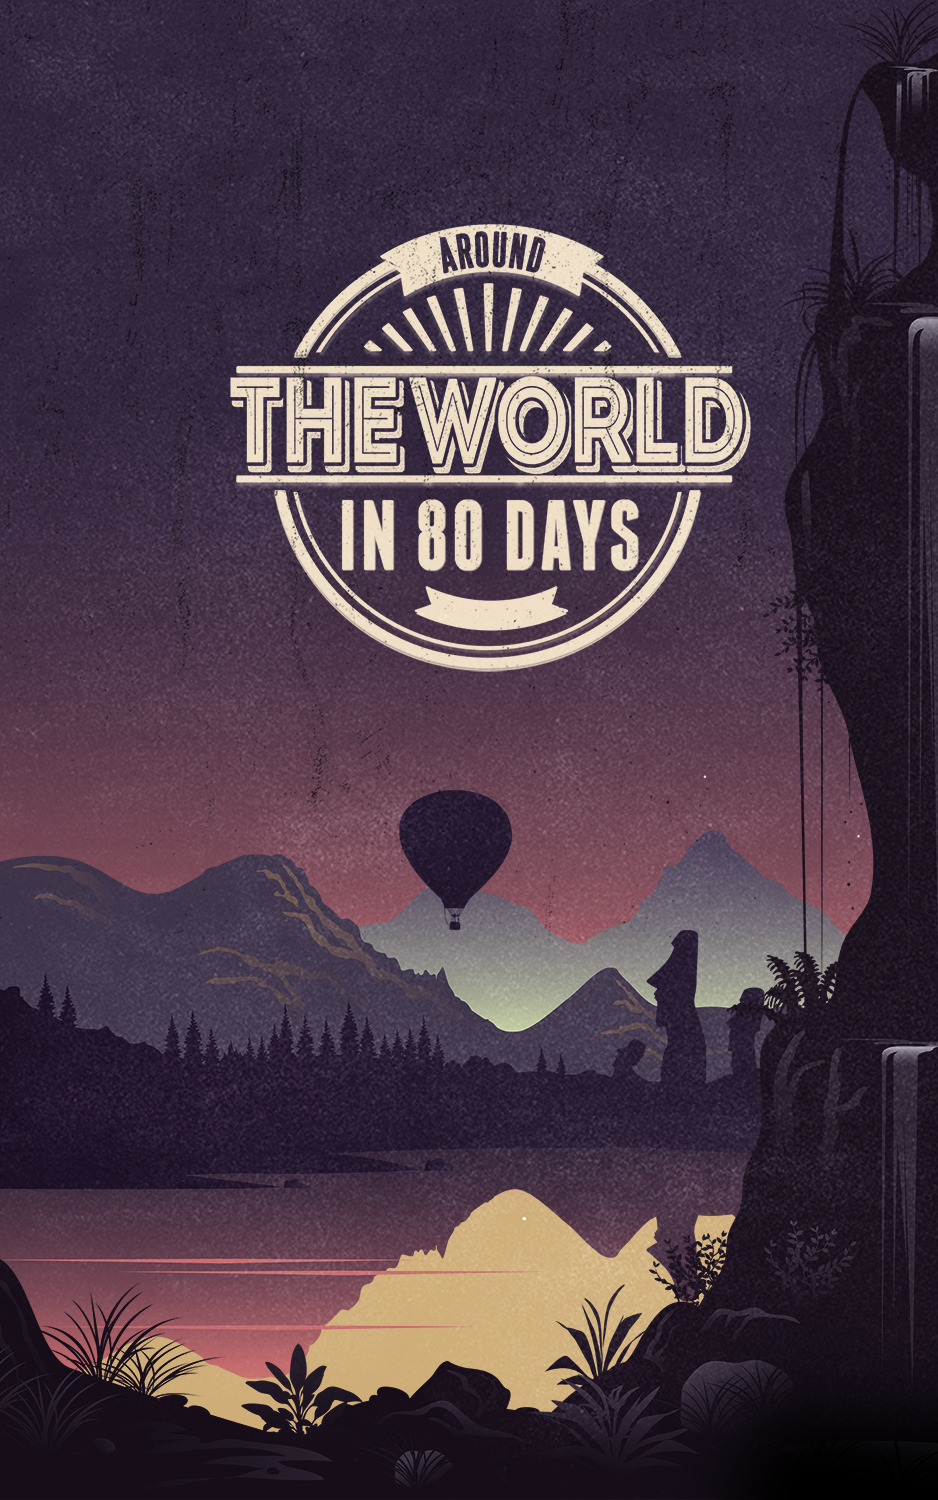 Around the World in 80 Days, Short Film